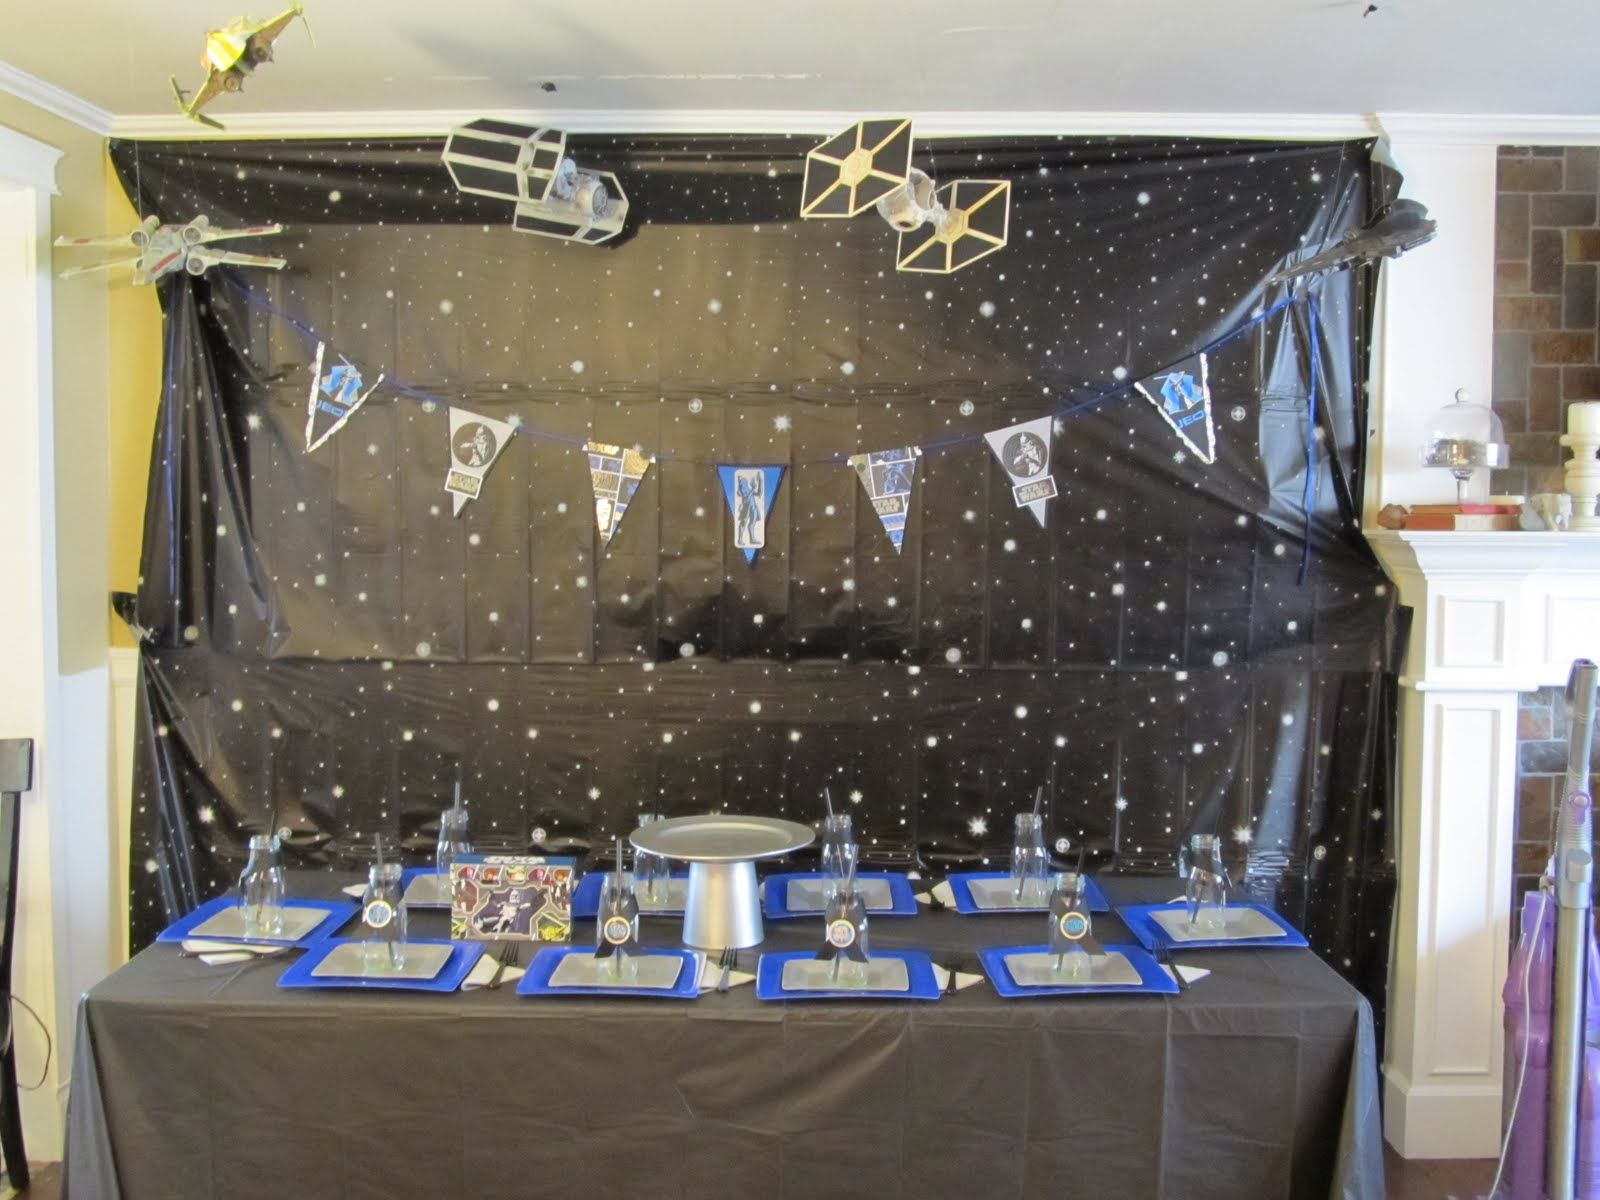 Star Wars Decorations Ideas Star Wars Table Decorations Star Wars Birthday Bash